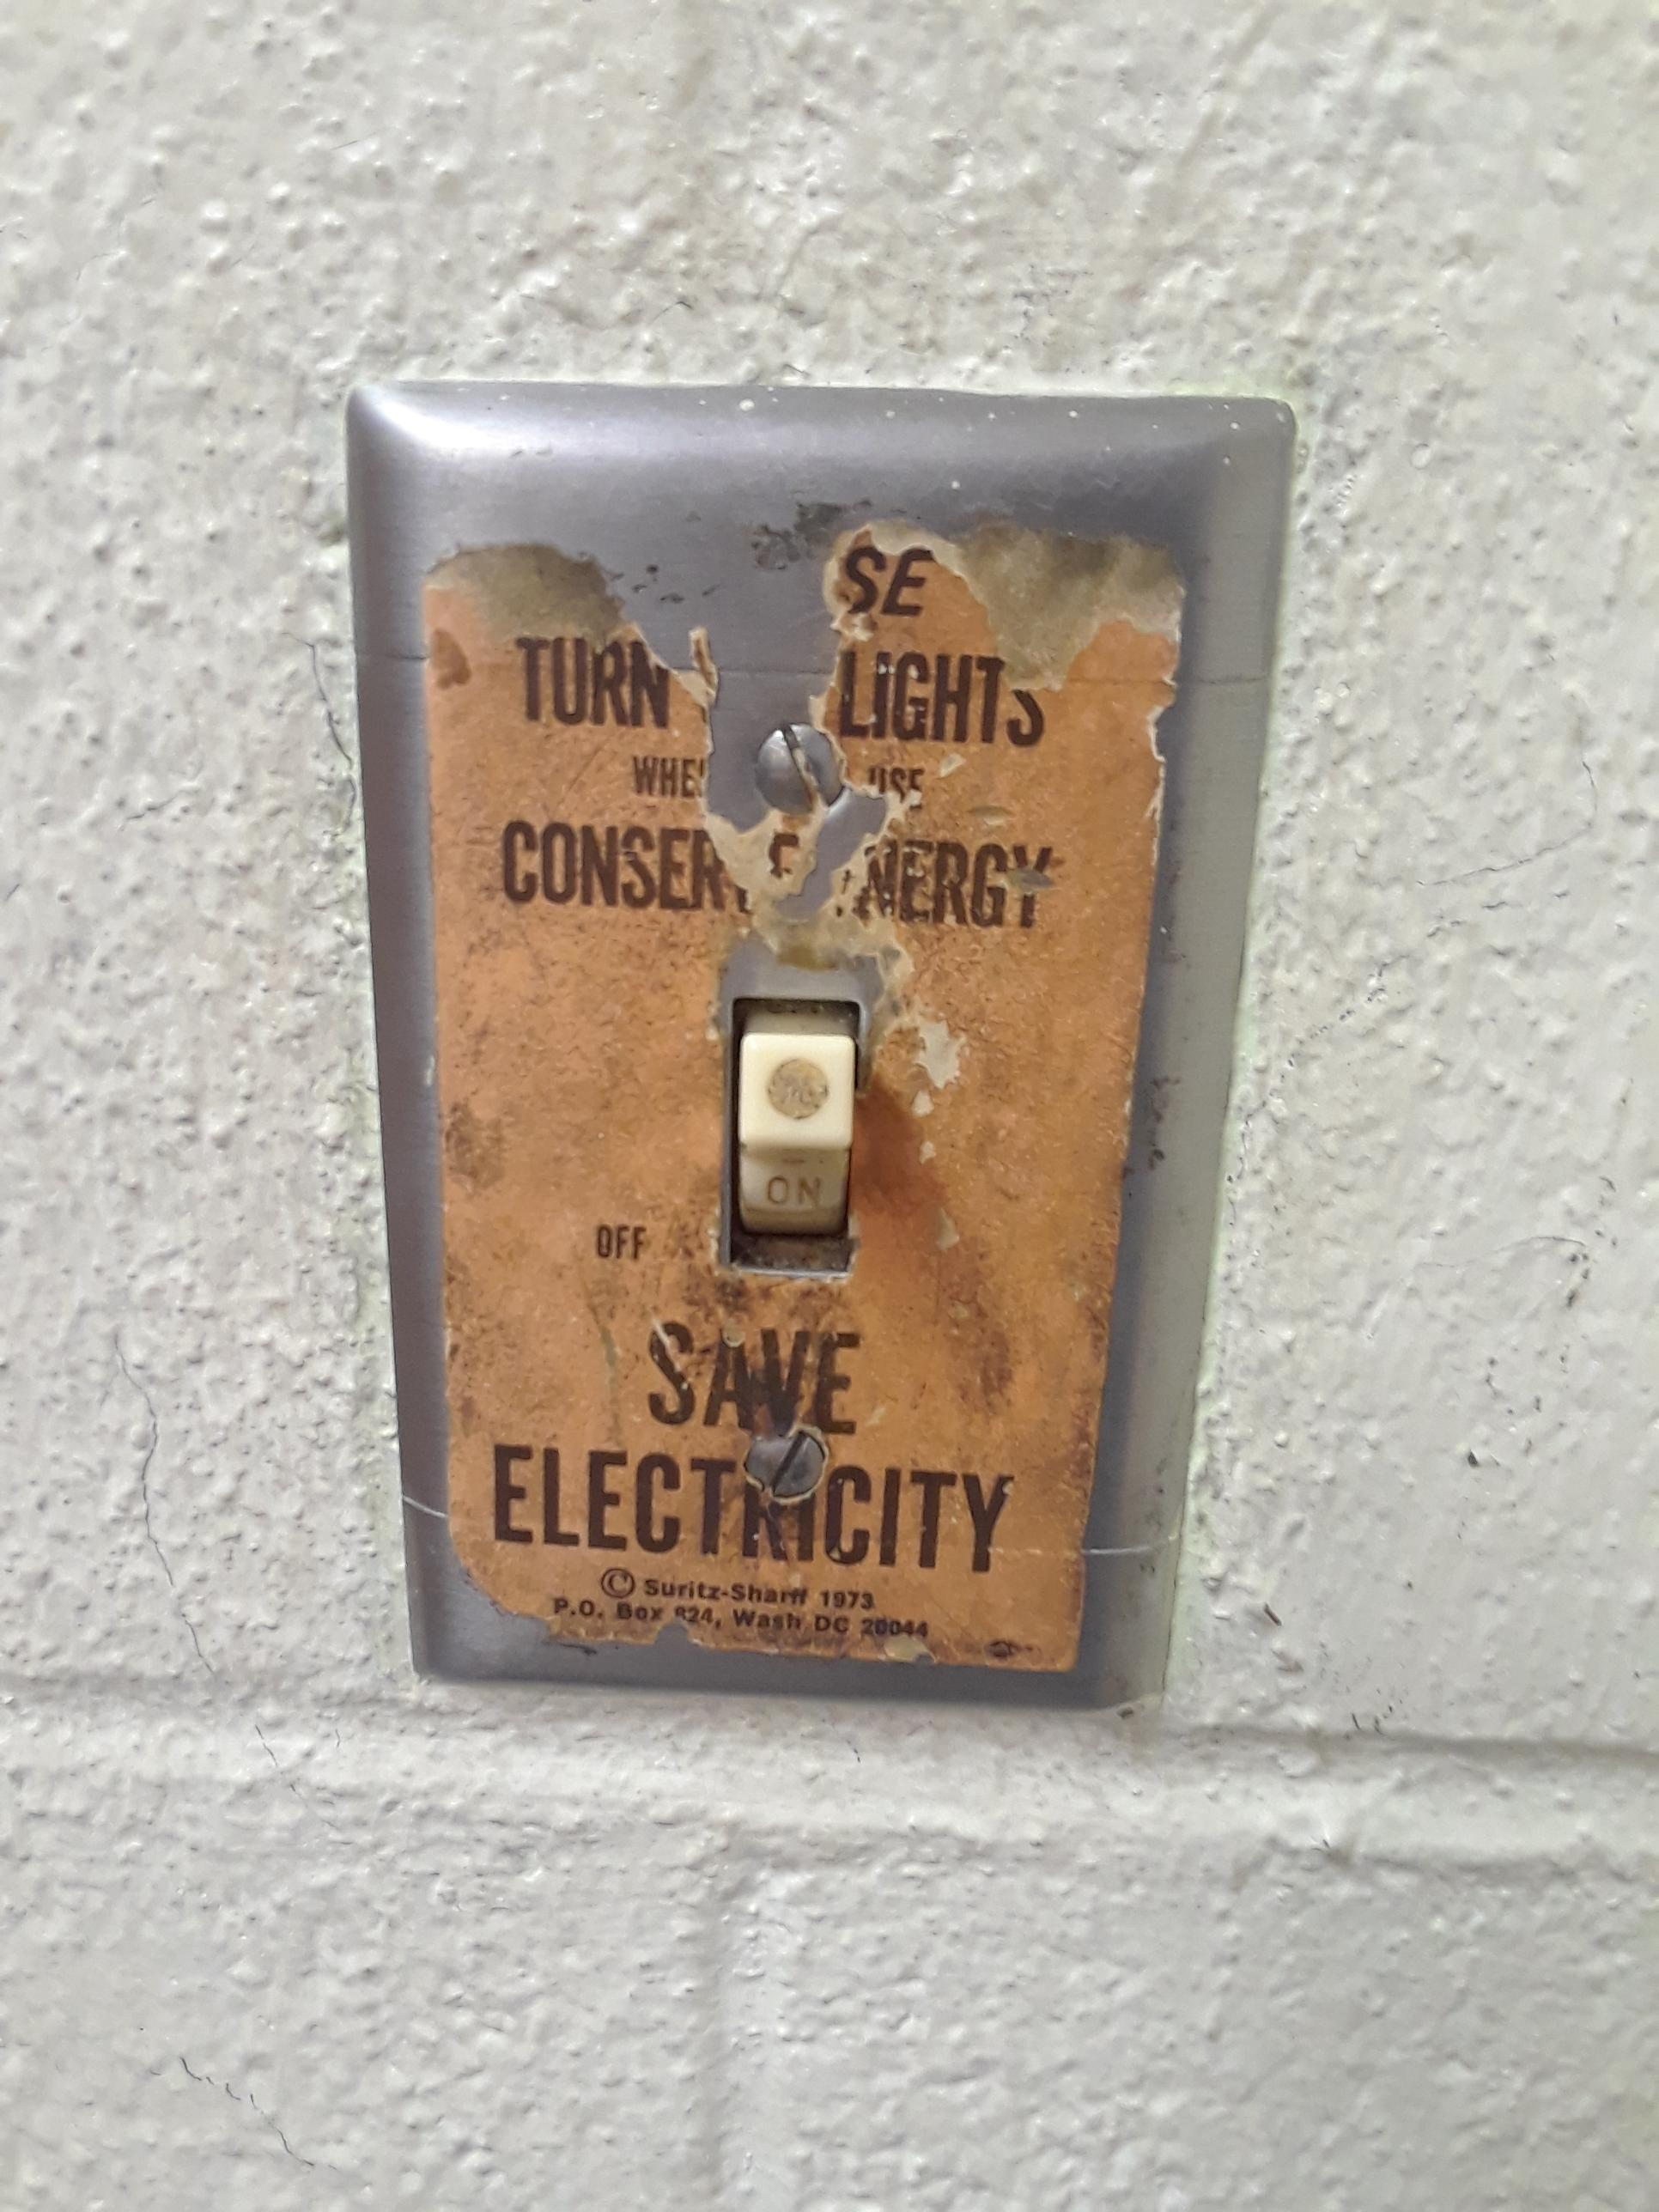 Conserve Electricity This Vintage Sticker That Encourages Shutting The Lights Off To